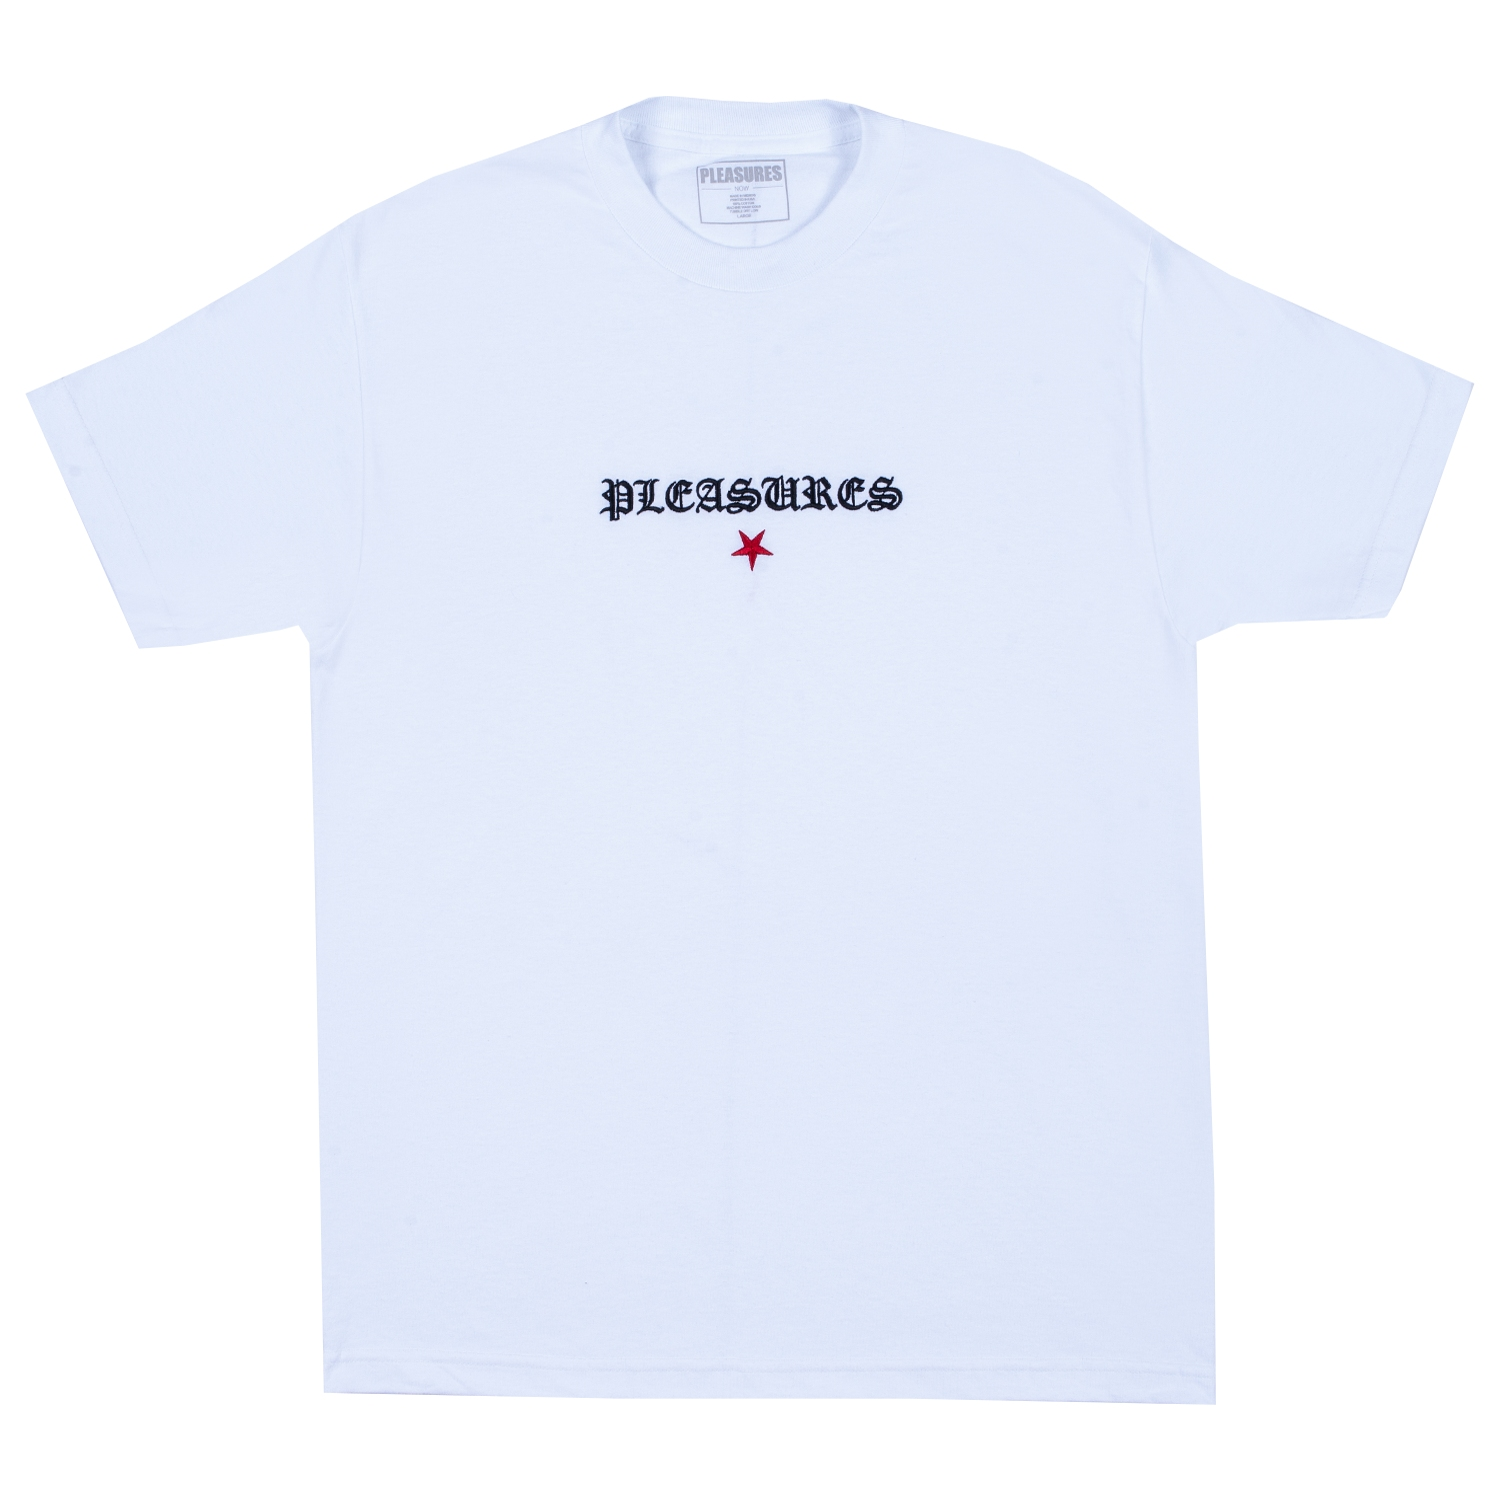 【PLEASURES/プレジャーズ】SHINE EMBROIDERED T-SHIRT Tシャツ / WHITE